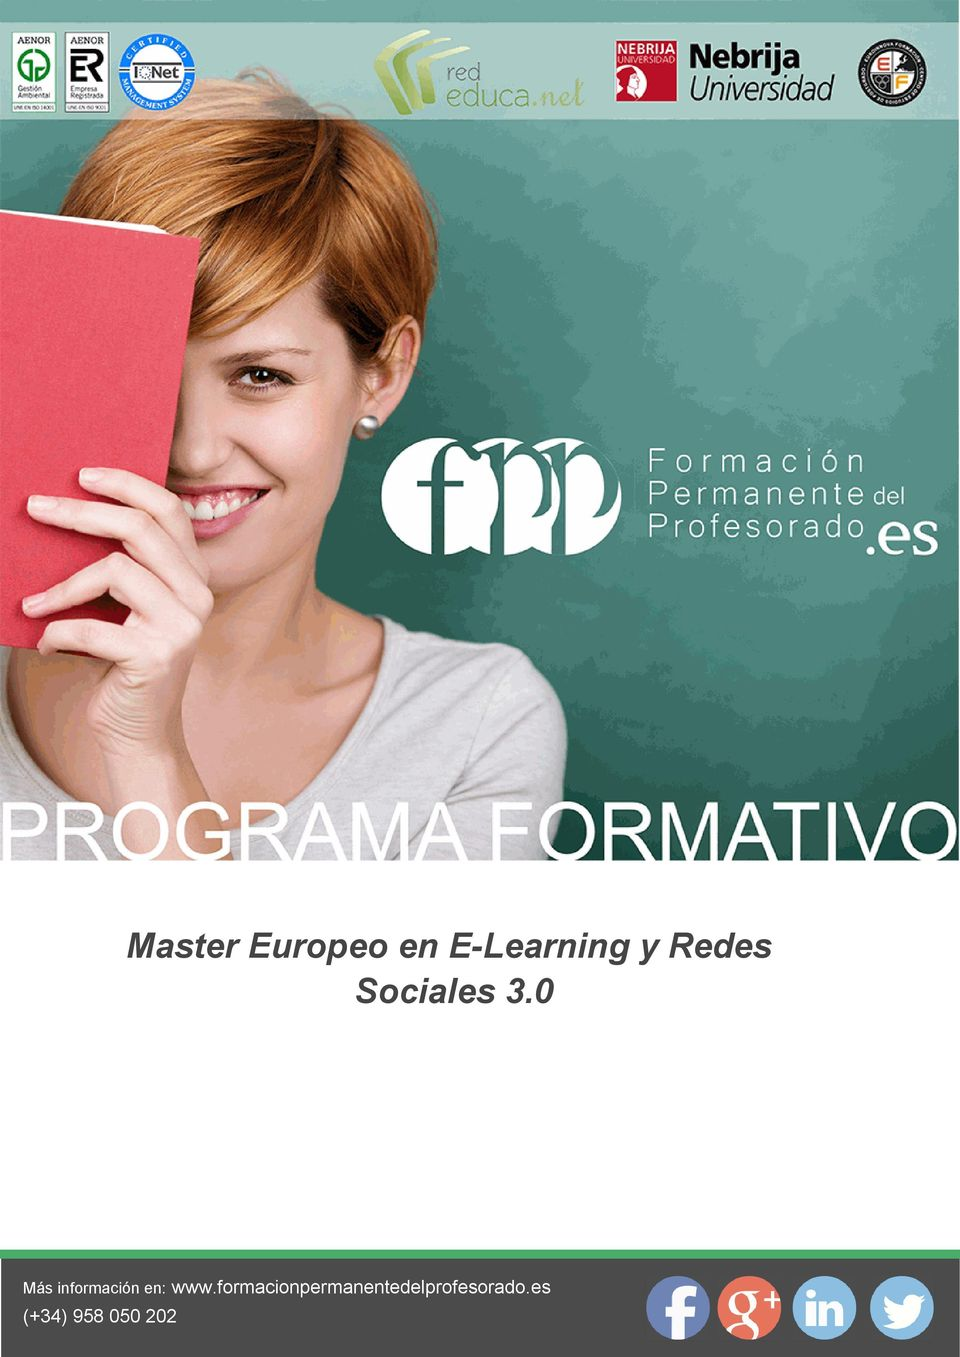 E-Learning y